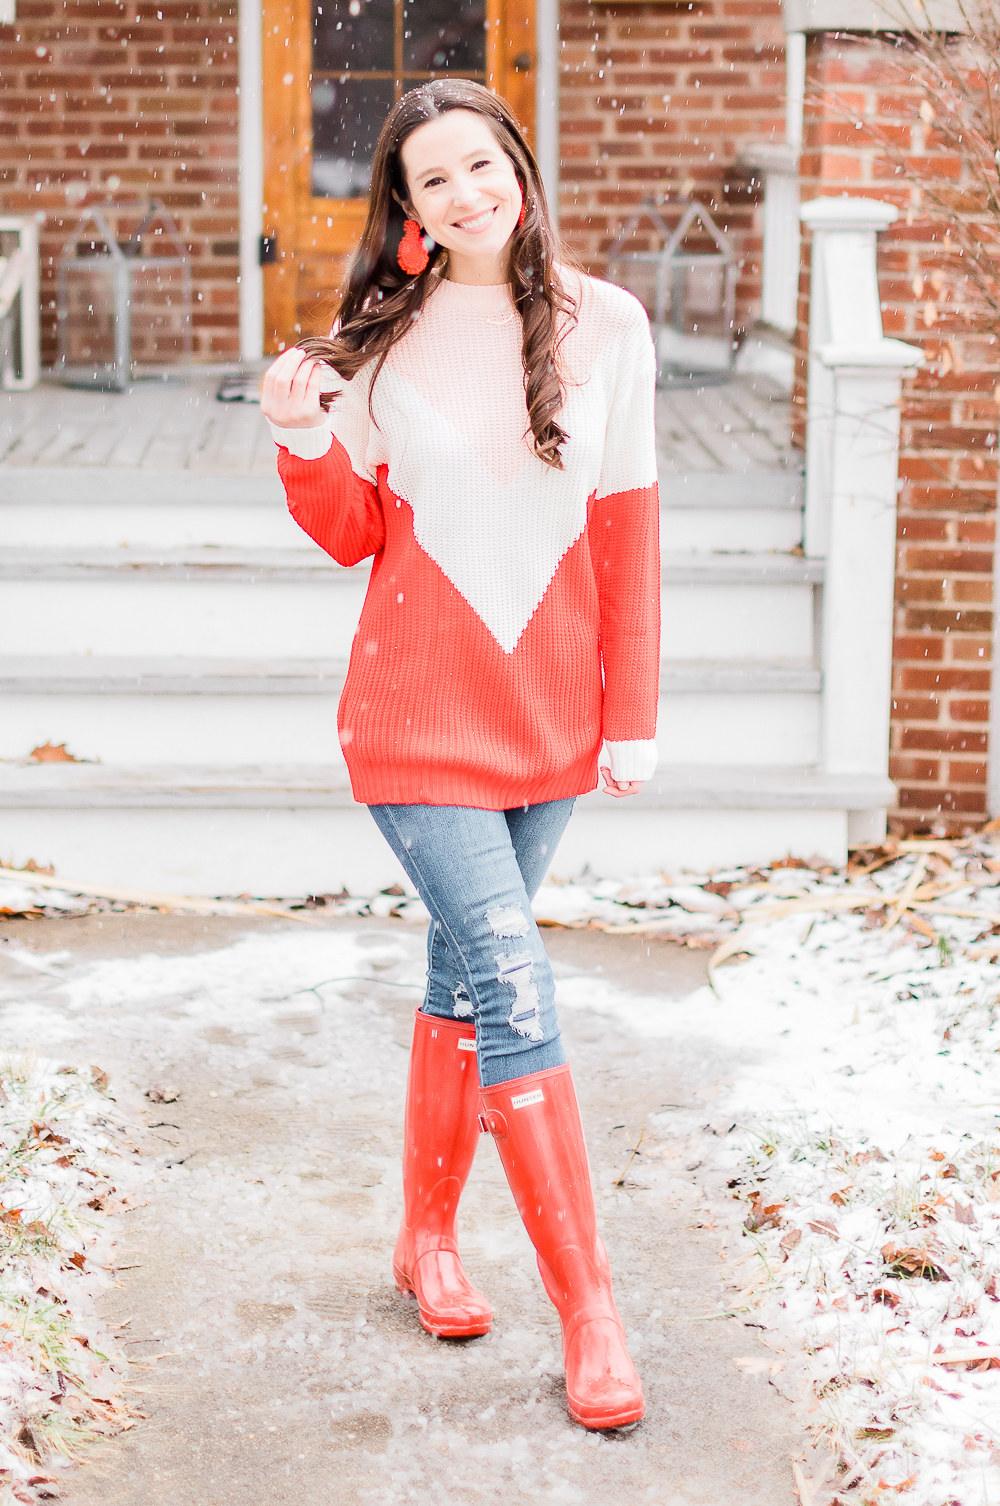 red Hunter boots, pink colorblock sweater, red colorblock sweater, Amazon beaded statement earrings, Date Night Outfit Ideas for Valentine's Day, Valentines Day outfit ideas, Galentines Day outfit ideas, Valentines Day outfits, popular affordable fashion blogger, Stephanie Ziajka, popular affordable fashion blog, Diary of a Debutante